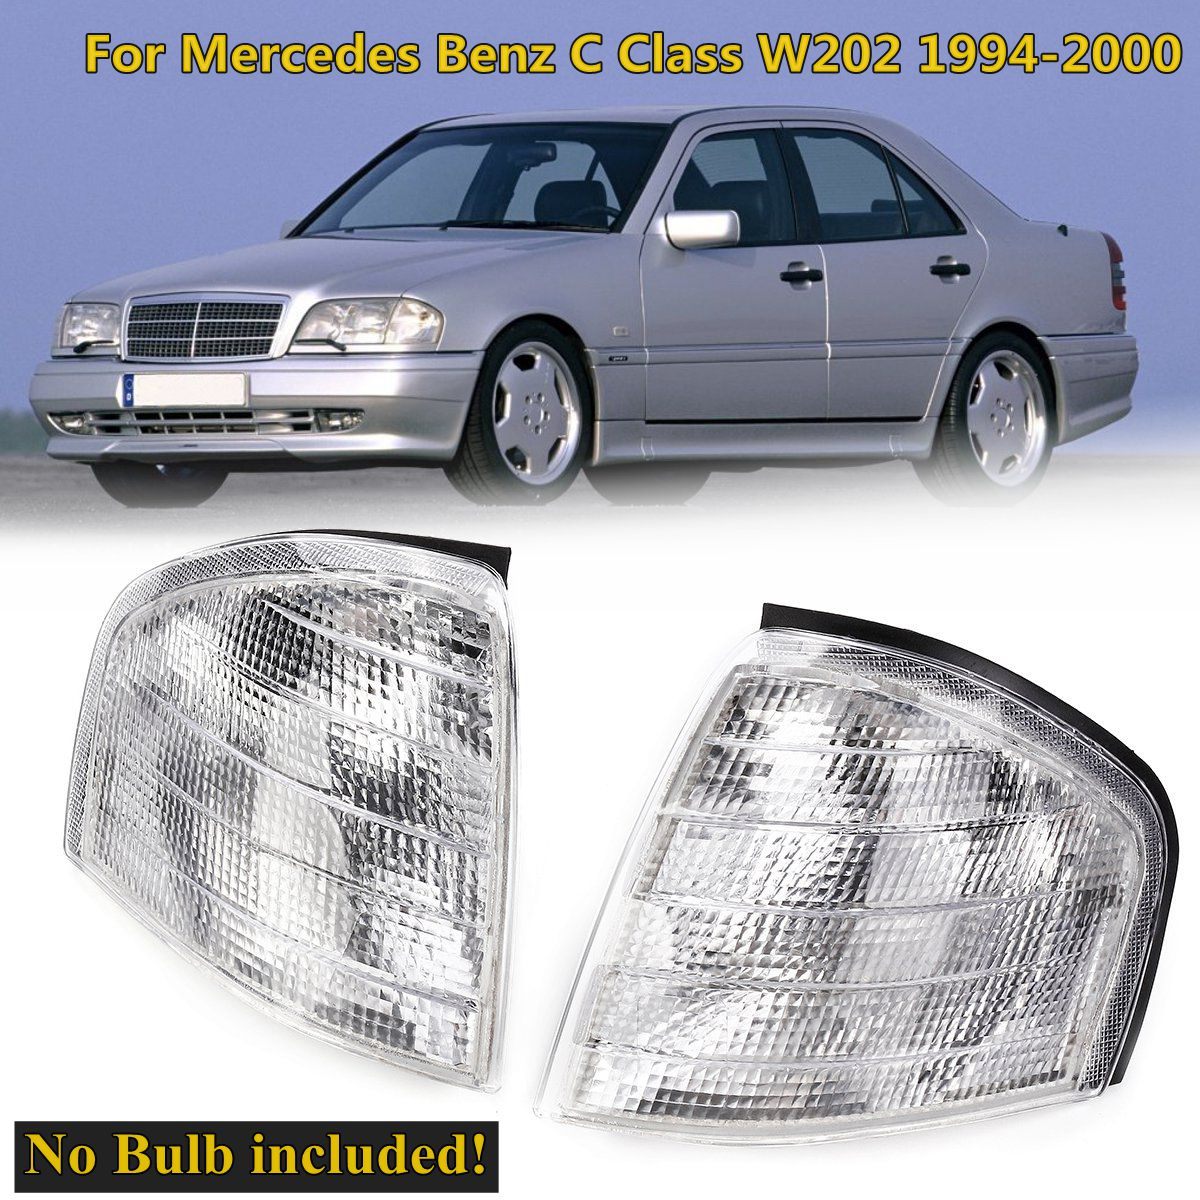 MB2521101, 2028261243 1 Pair Clear Corner Lights Side Signal Lamps For Mercedes for Benz C Class W202 1994 1995 1996 1997~2000 free shipping leather car floor mat for mercedes benz c calss w202 1994 1995 1996 1997 1998 1999 2000 c180 c200 c220 c280 c240